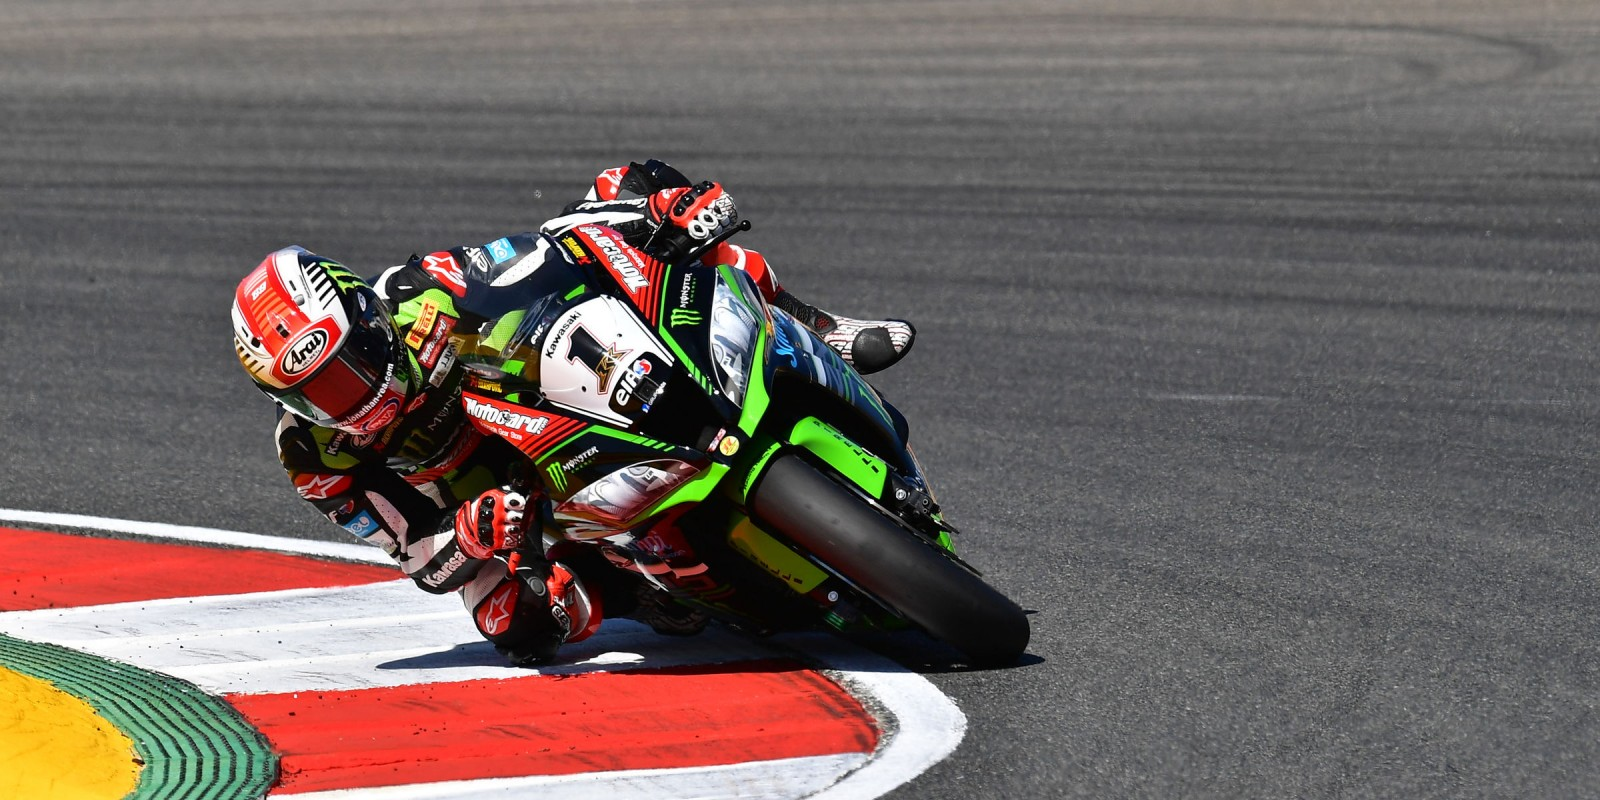 Jonathan Rea at the 2017 World Superbike Portuguese round